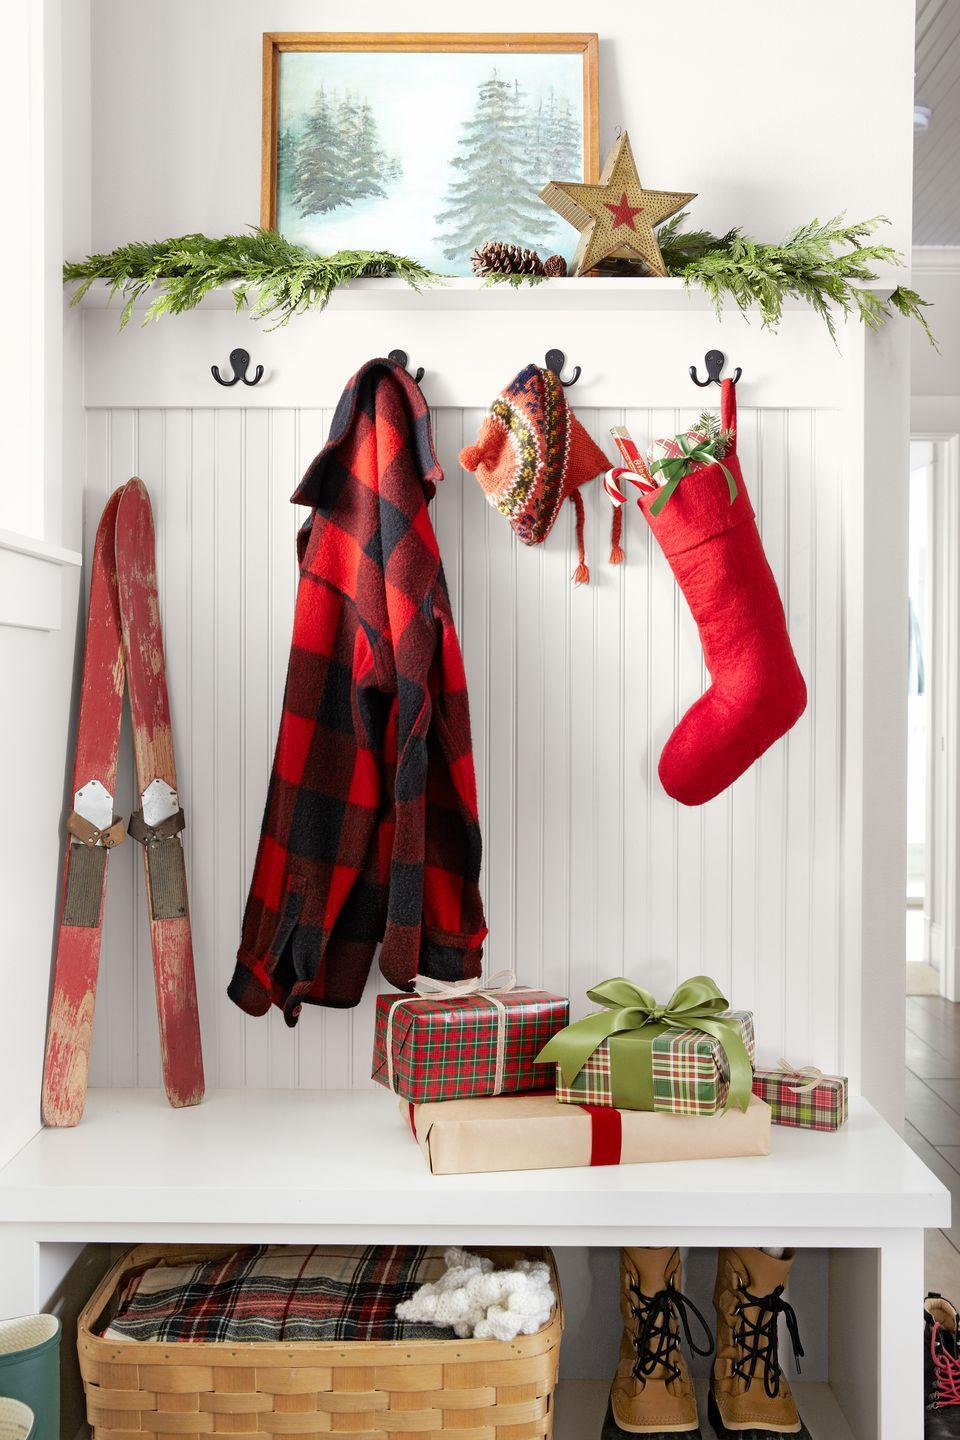 """<p>Custom is great, but even a plain felt stocking hits a festive note in the entryway of this <a href=""""https://www.countryliving.com/home-design/decorating-ideas/g1570/serena-thompson-christmas-decorating-ideas/"""" rel=""""nofollow noopener"""" target=""""_blank"""" data-ylk=""""slk:Washington home"""" class=""""link rapid-noclick-resp"""">Washington home</a>. </p><p><a class=""""link rapid-noclick-resp"""" href=""""https://www.amazon.com/s/ref=nb_sb_noss_2?url=search-alias%3Daps&field-keywords=red+felt+stocking&rh=i%3Aaps%2Ck%3Ared+felt+stocking&tag=syn-yahoo-20&ascsubtag=%5Bartid%7C10050.g.1407%5Bsrc%7Cyahoo-us"""" rel=""""nofollow noopener"""" target=""""_blank"""" data-ylk=""""slk:SHOP FELT STOCKINGS"""">SHOP FELT STOCKINGS</a></p>"""